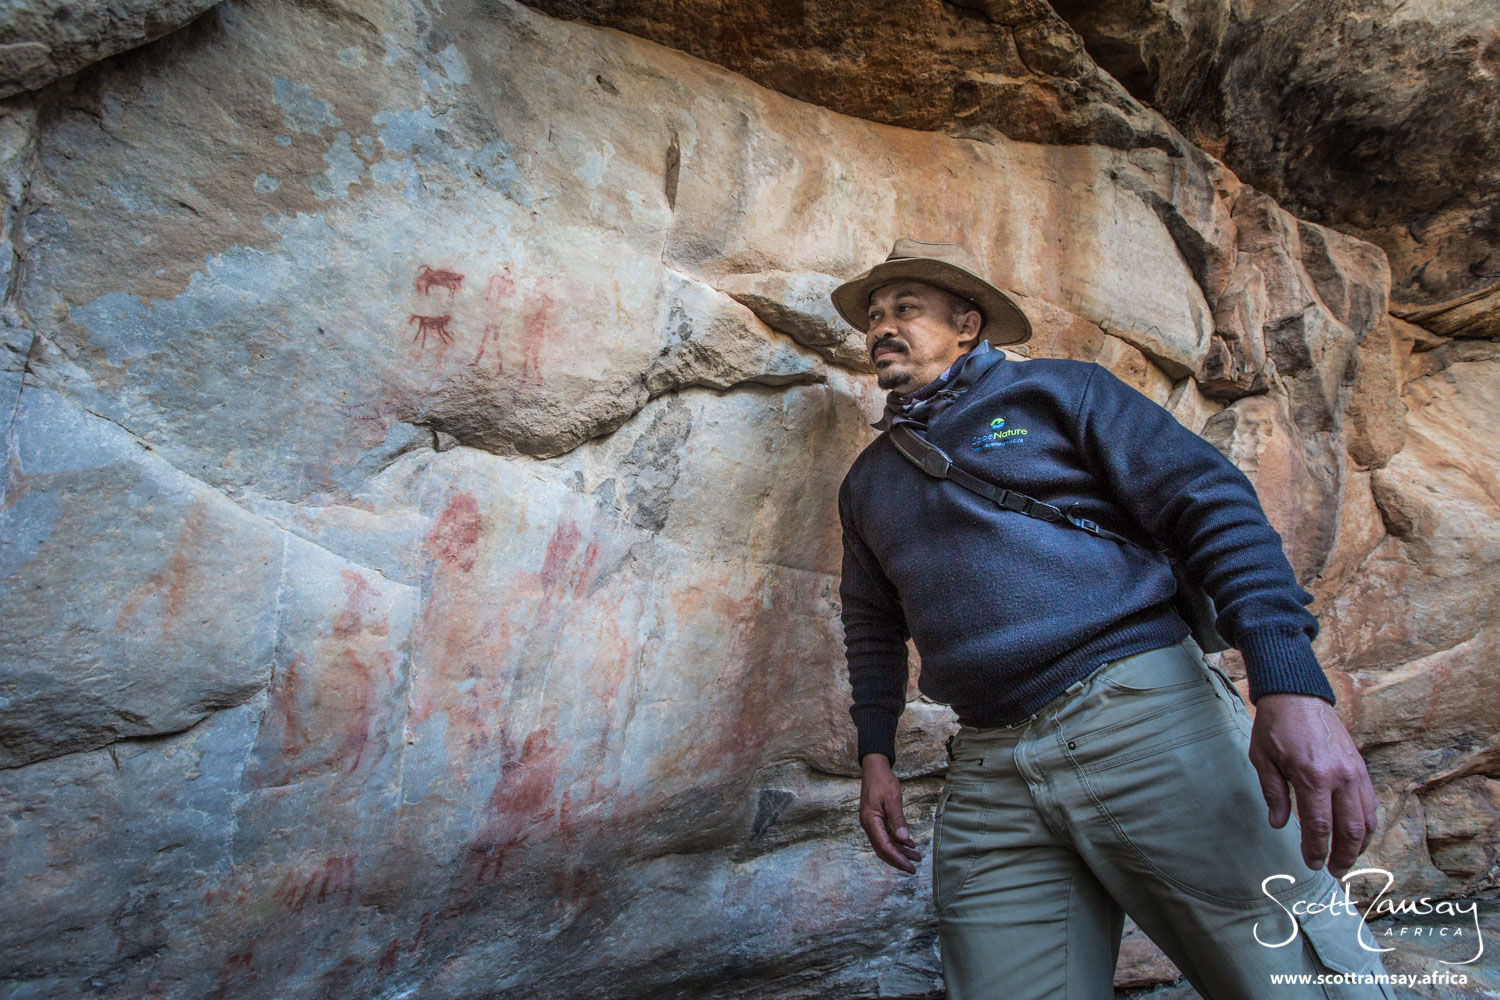 """Field ranger Jona Zimry is the man who looks after the northern Cederberg. His father John Zimry was a legend of the area, """"discovering"""" many of the rock art paintings for which the Cederberg is world famous."""